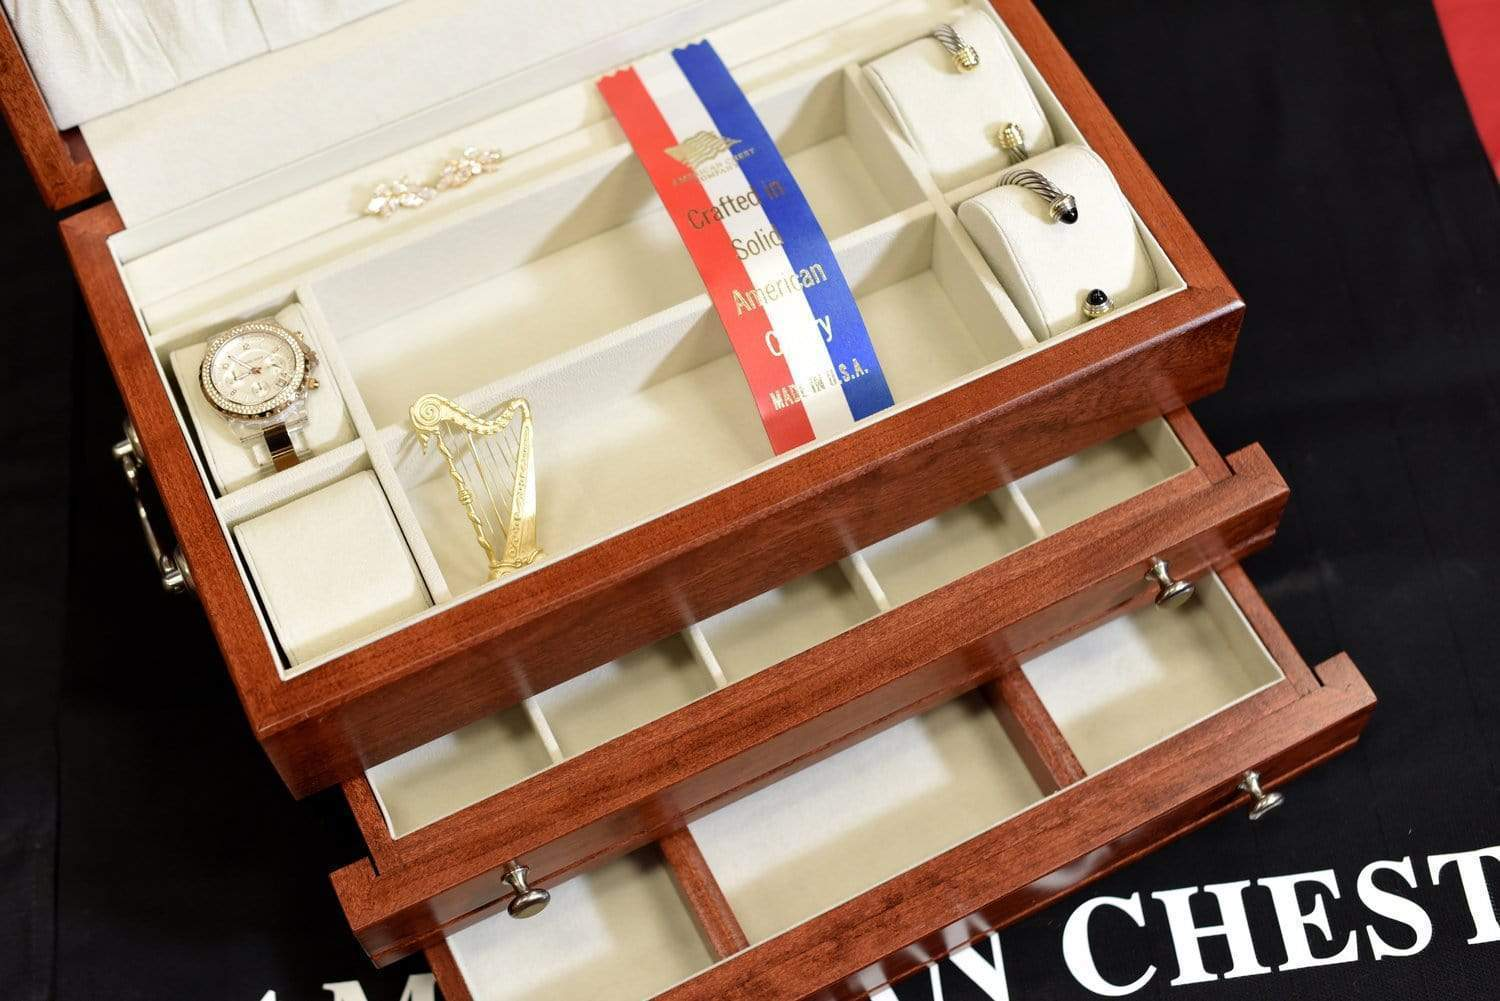 American Chests #J02 FIRST LADY - 2 Draw Jewelry Chest Armadillo Safe and Vault